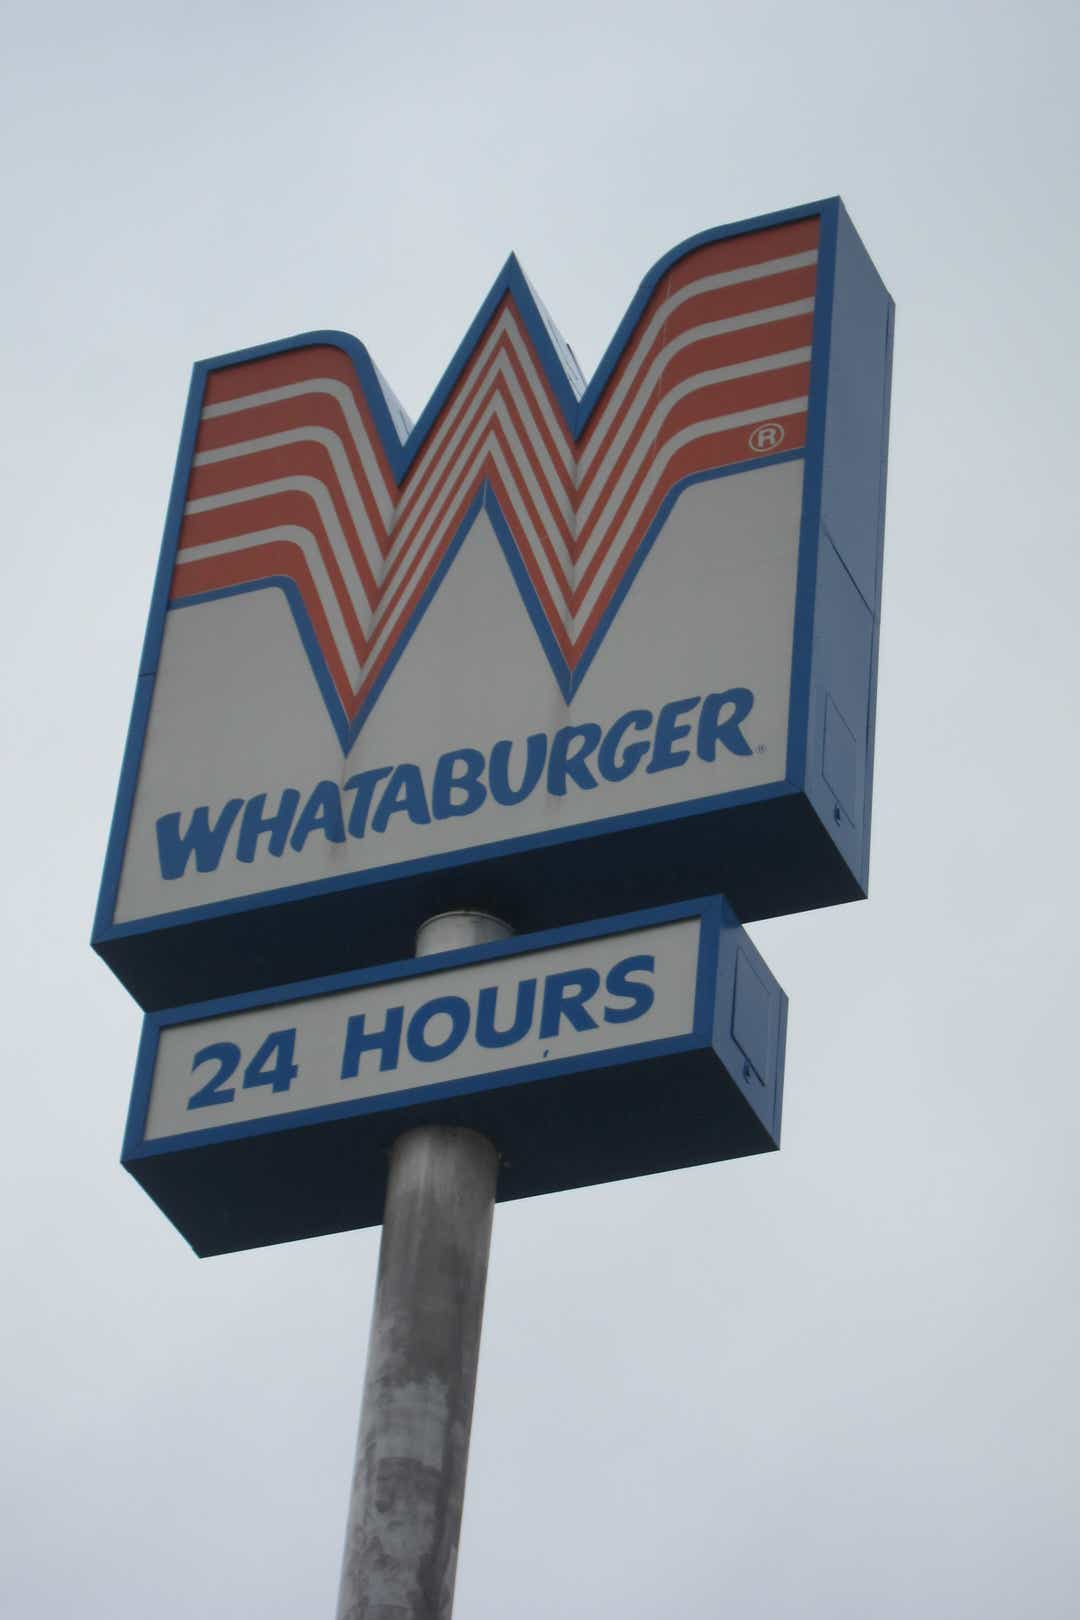 Rat at Whataburger in Texas jumps into deep fryer, viral video shows